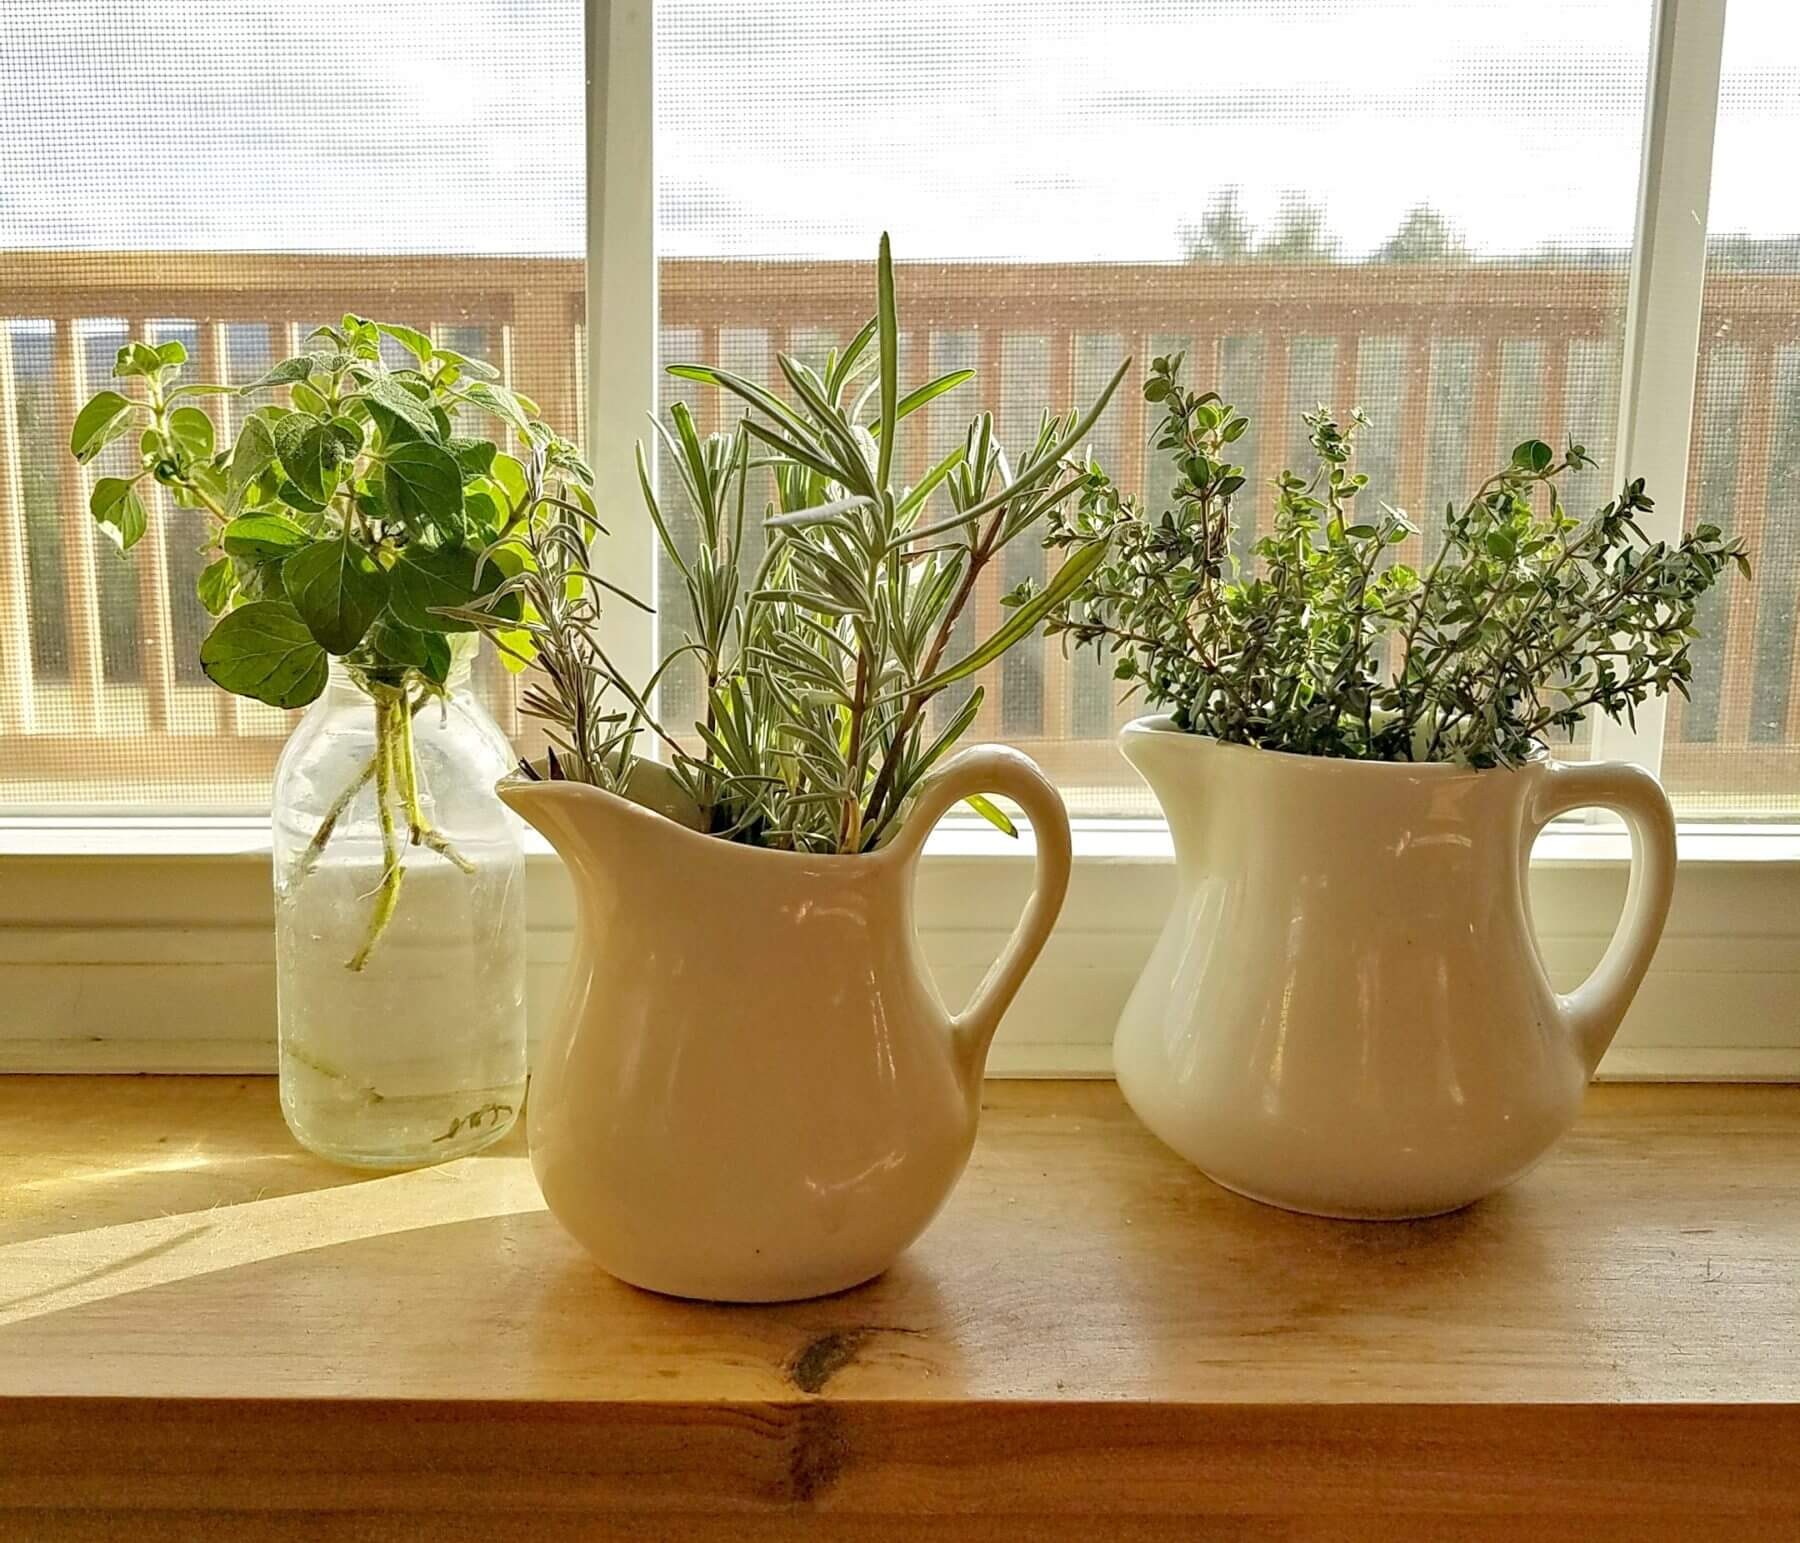 How to grow dill on a windowsill